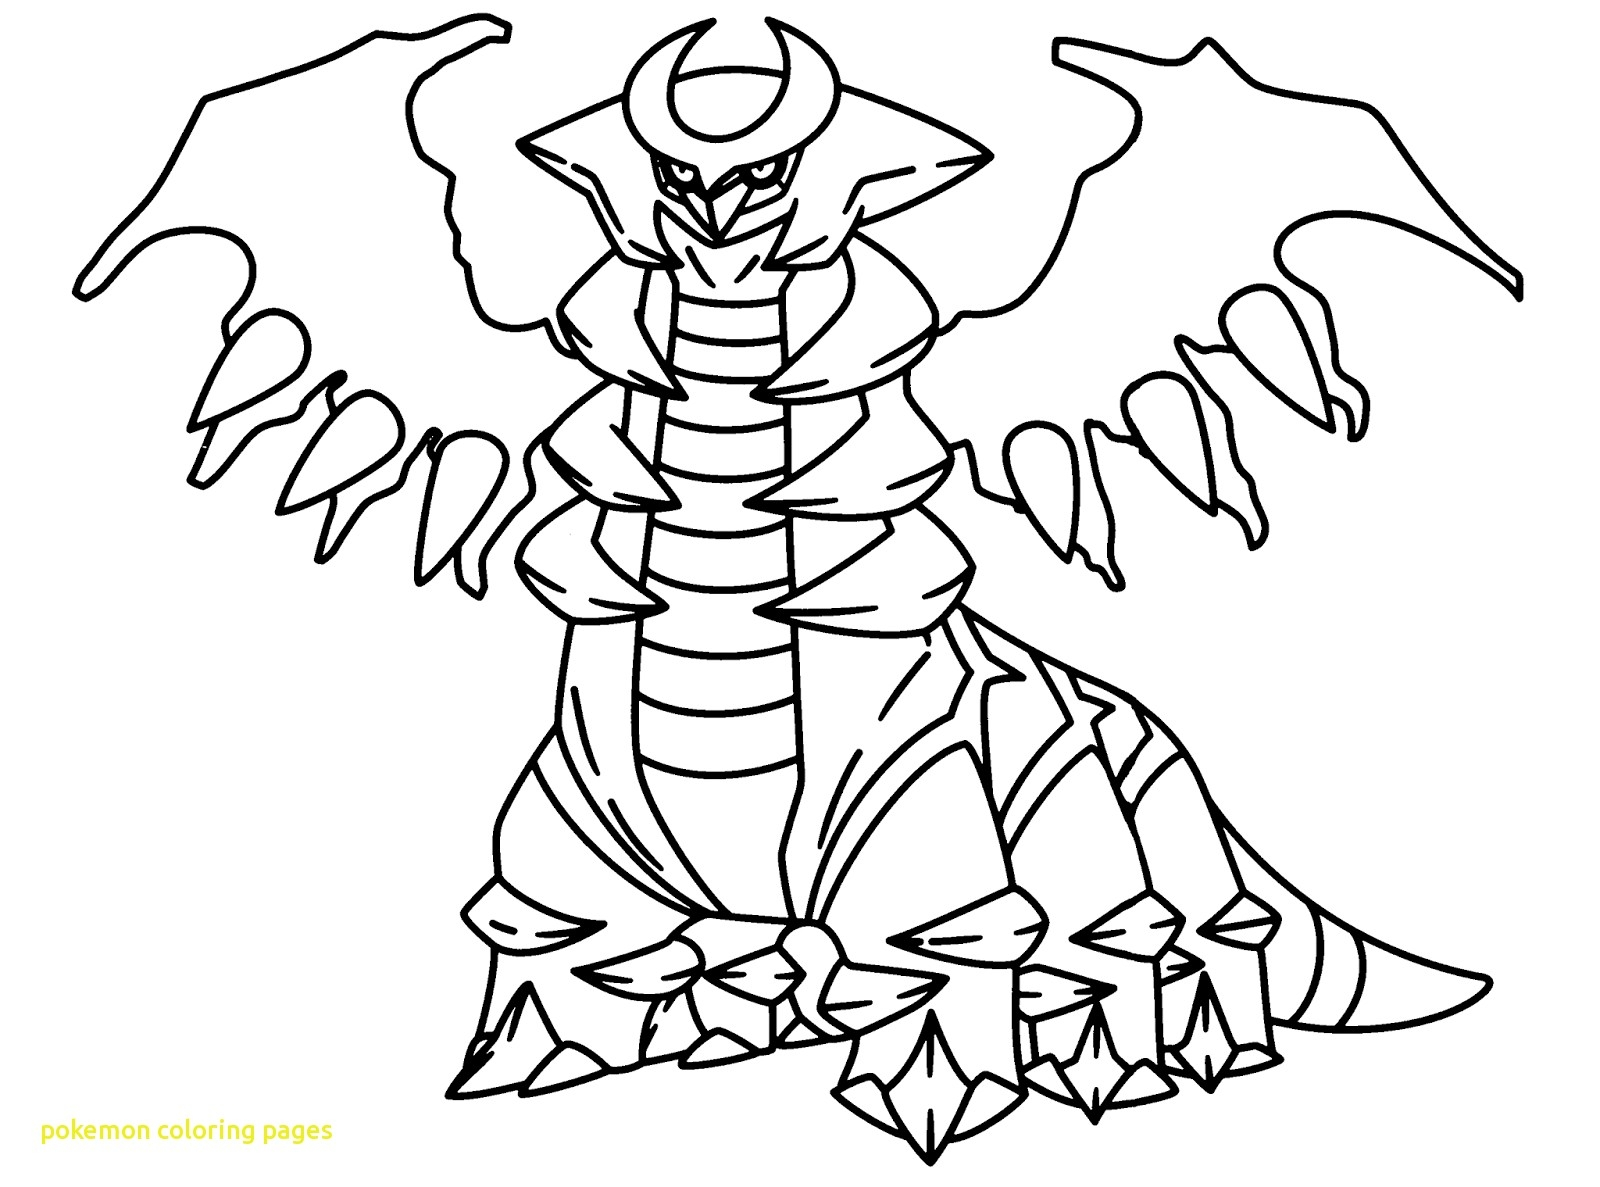 pokemon outline pictures pokémon go pikachu flying coloring page free printable pictures pokemon outline